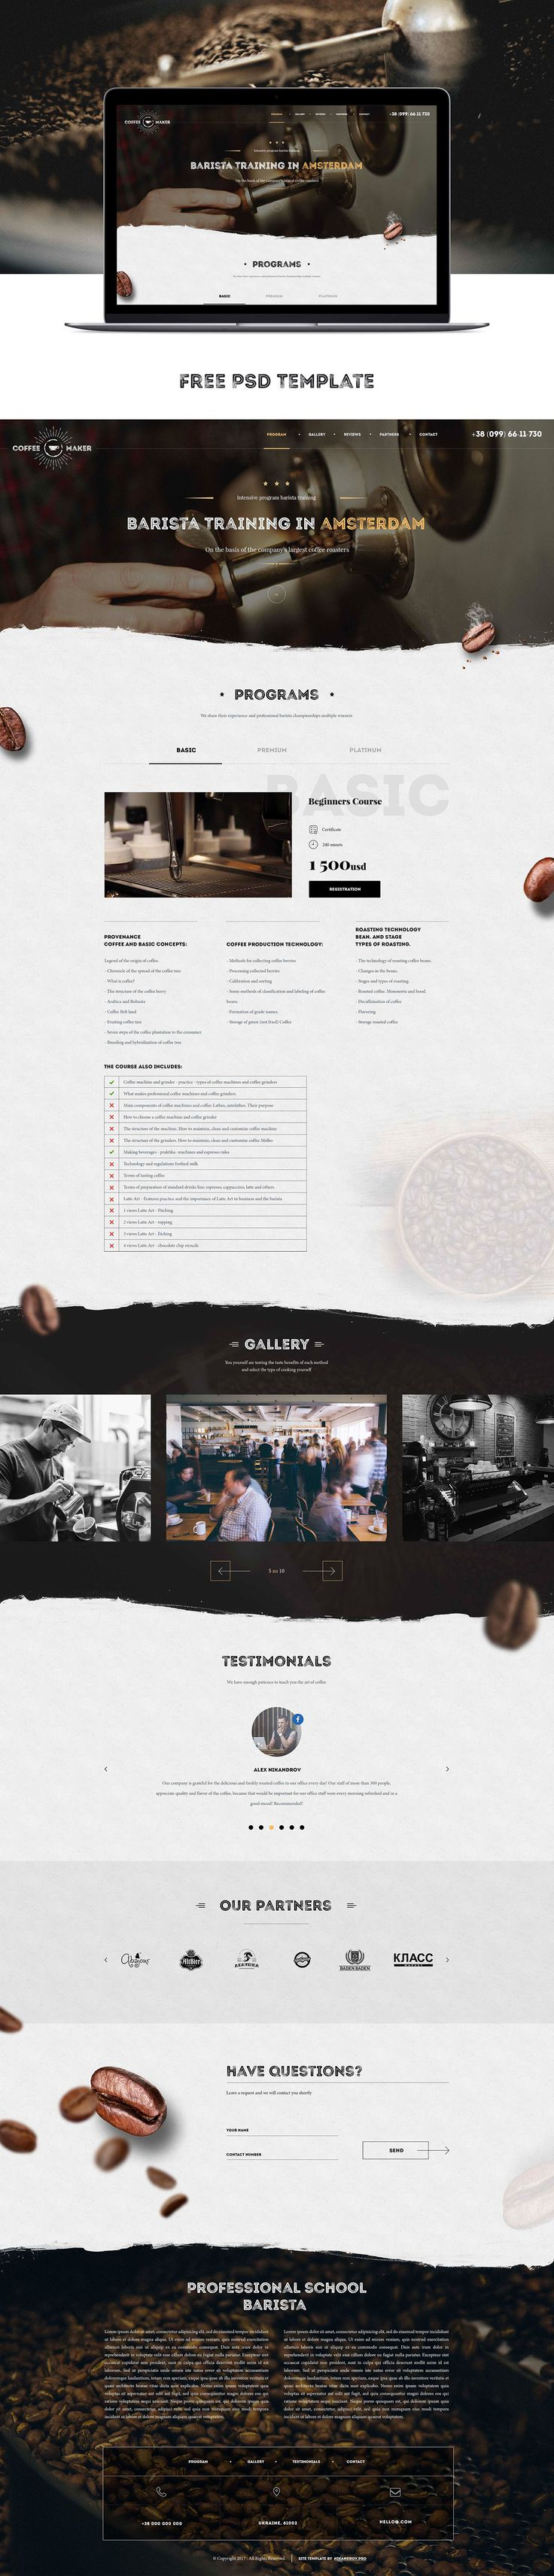 Psd template Barista course coffee on Behance